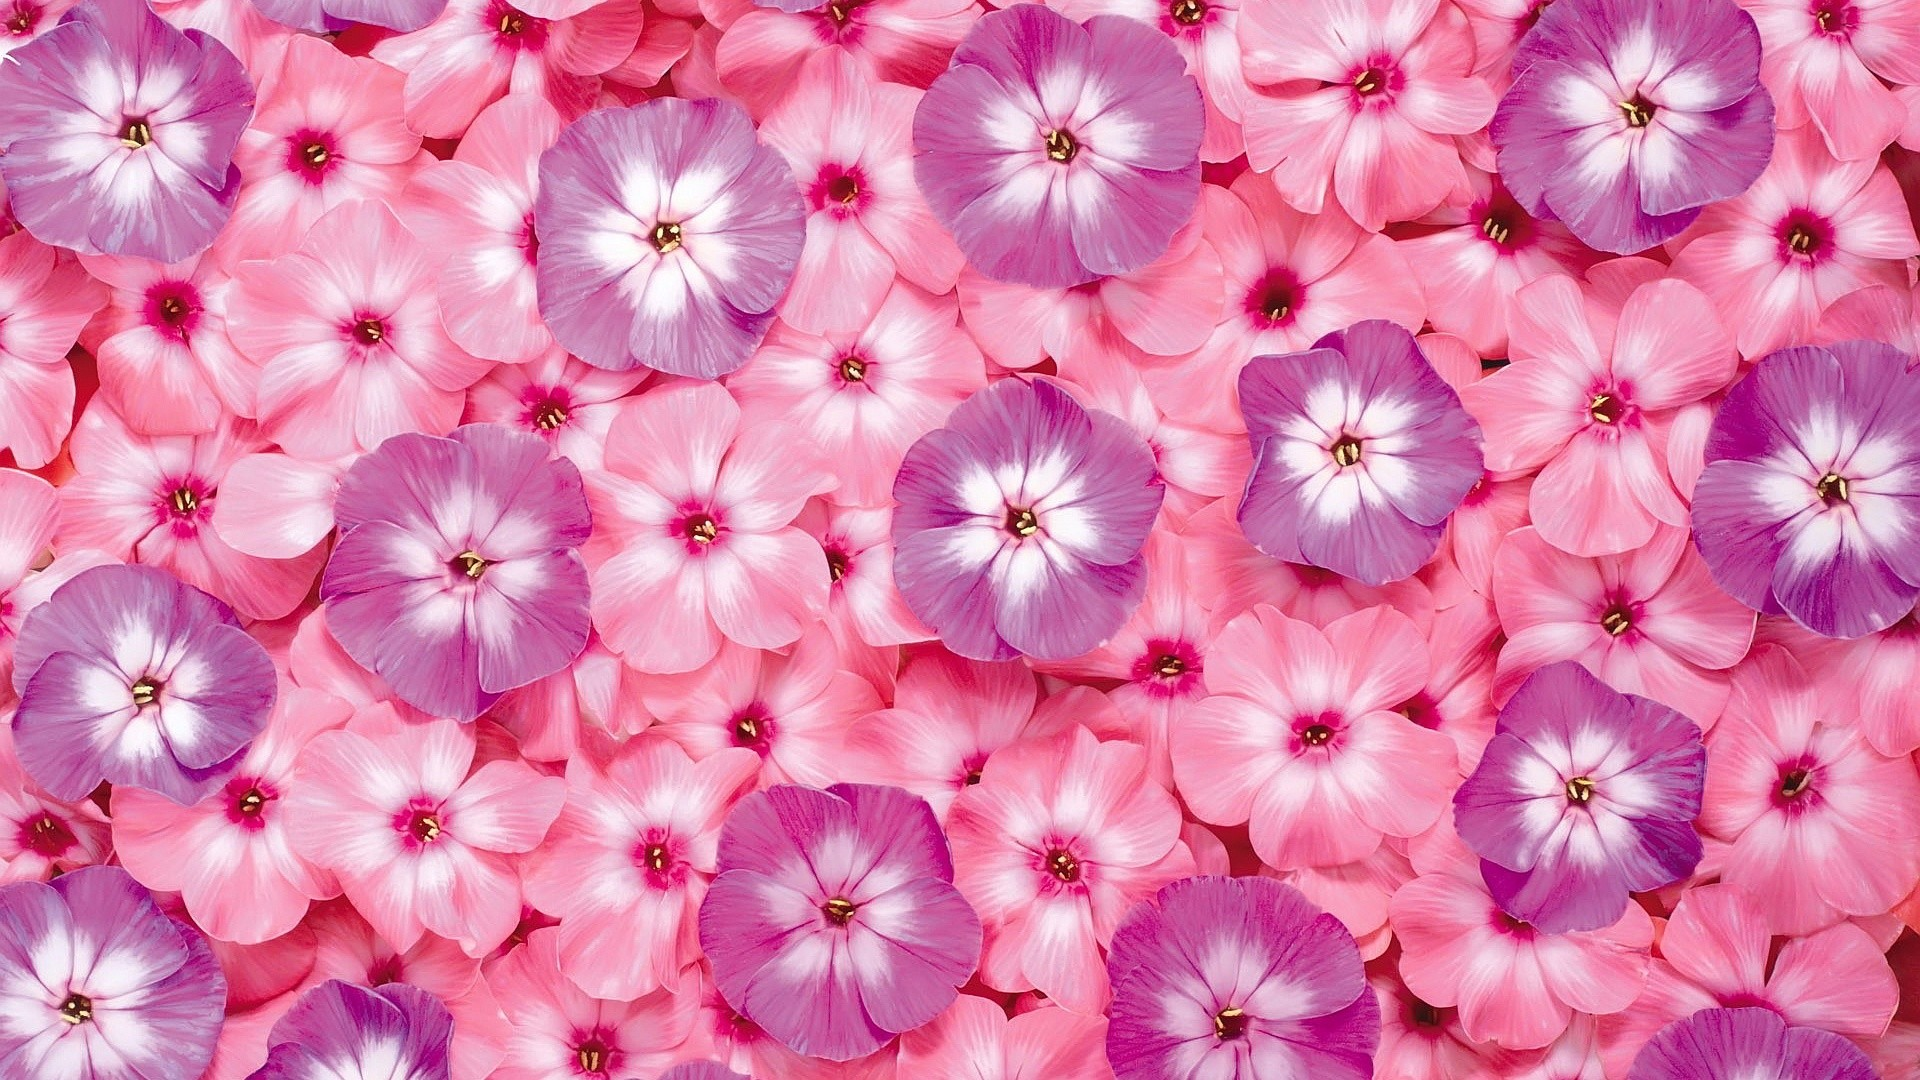 pink floral background jpg - photo #24